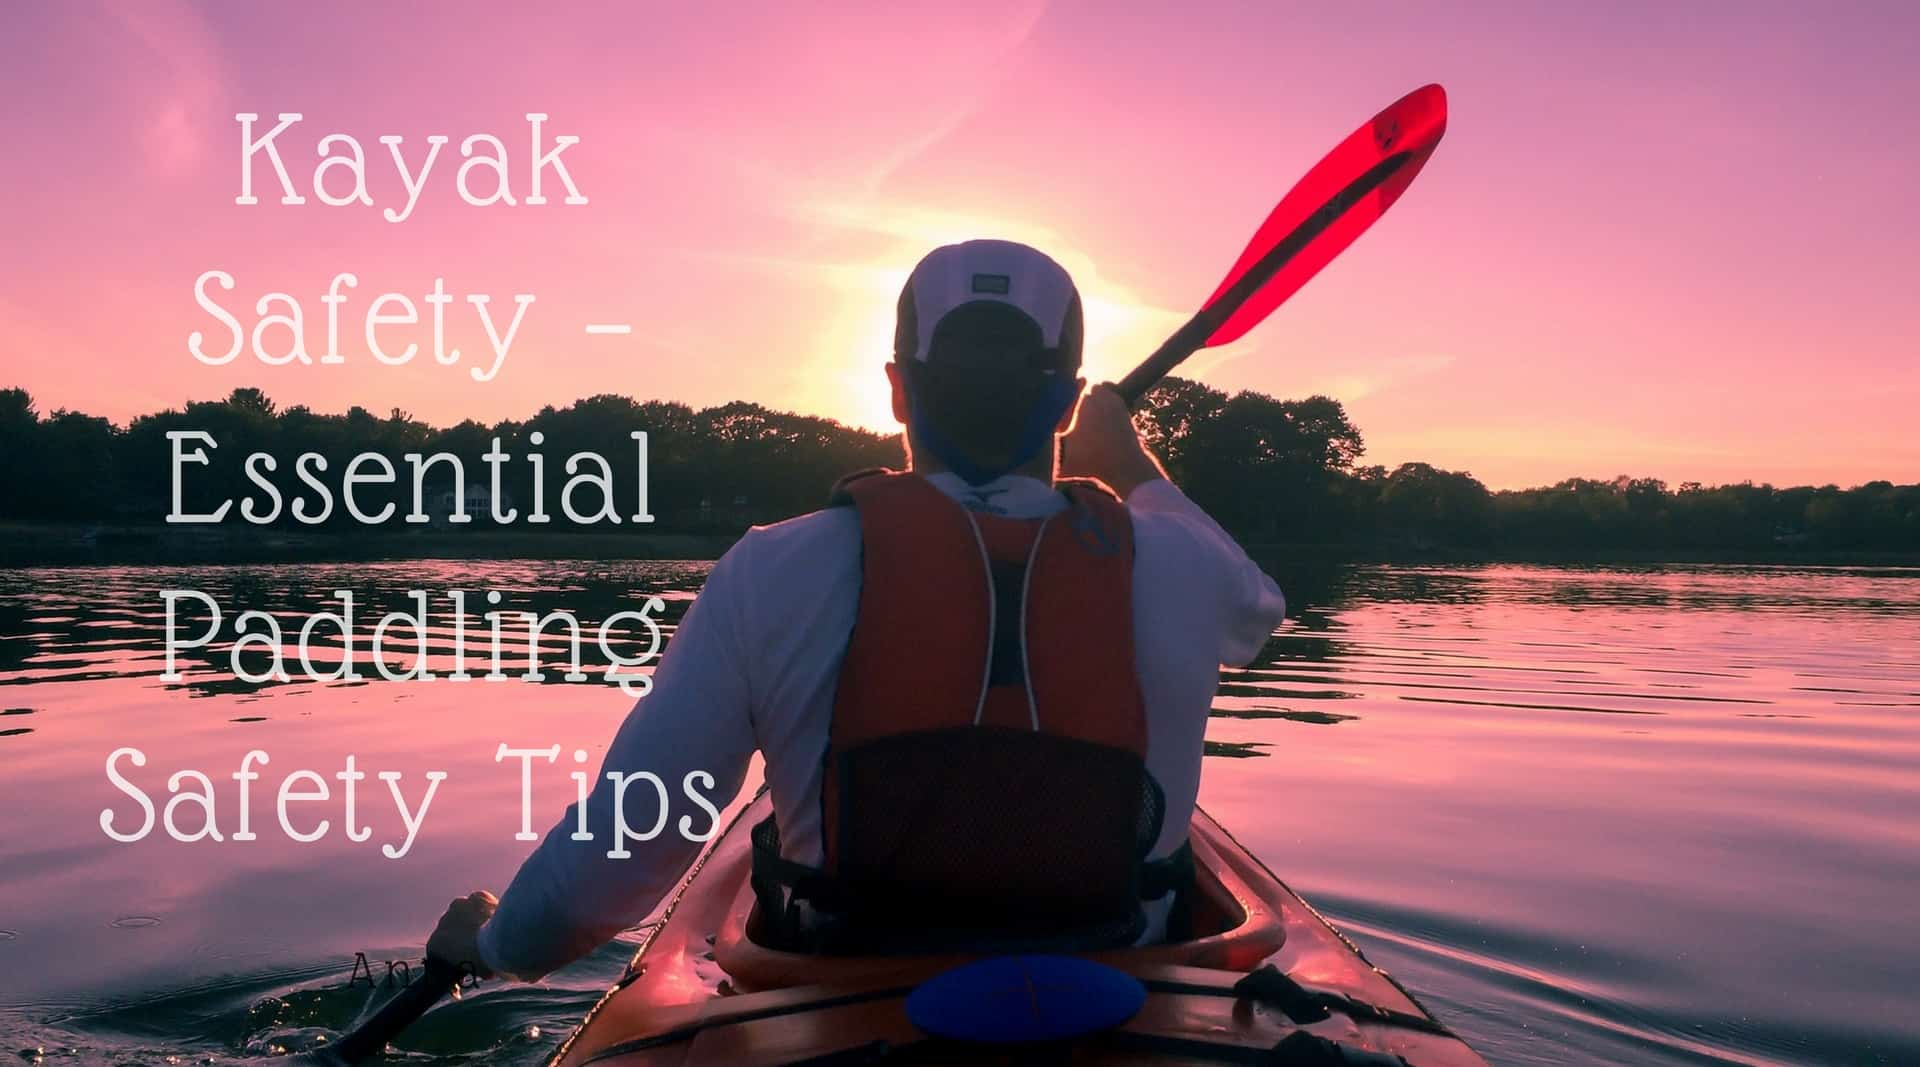 Kayak Safety - Essential Paddling Safety Tips